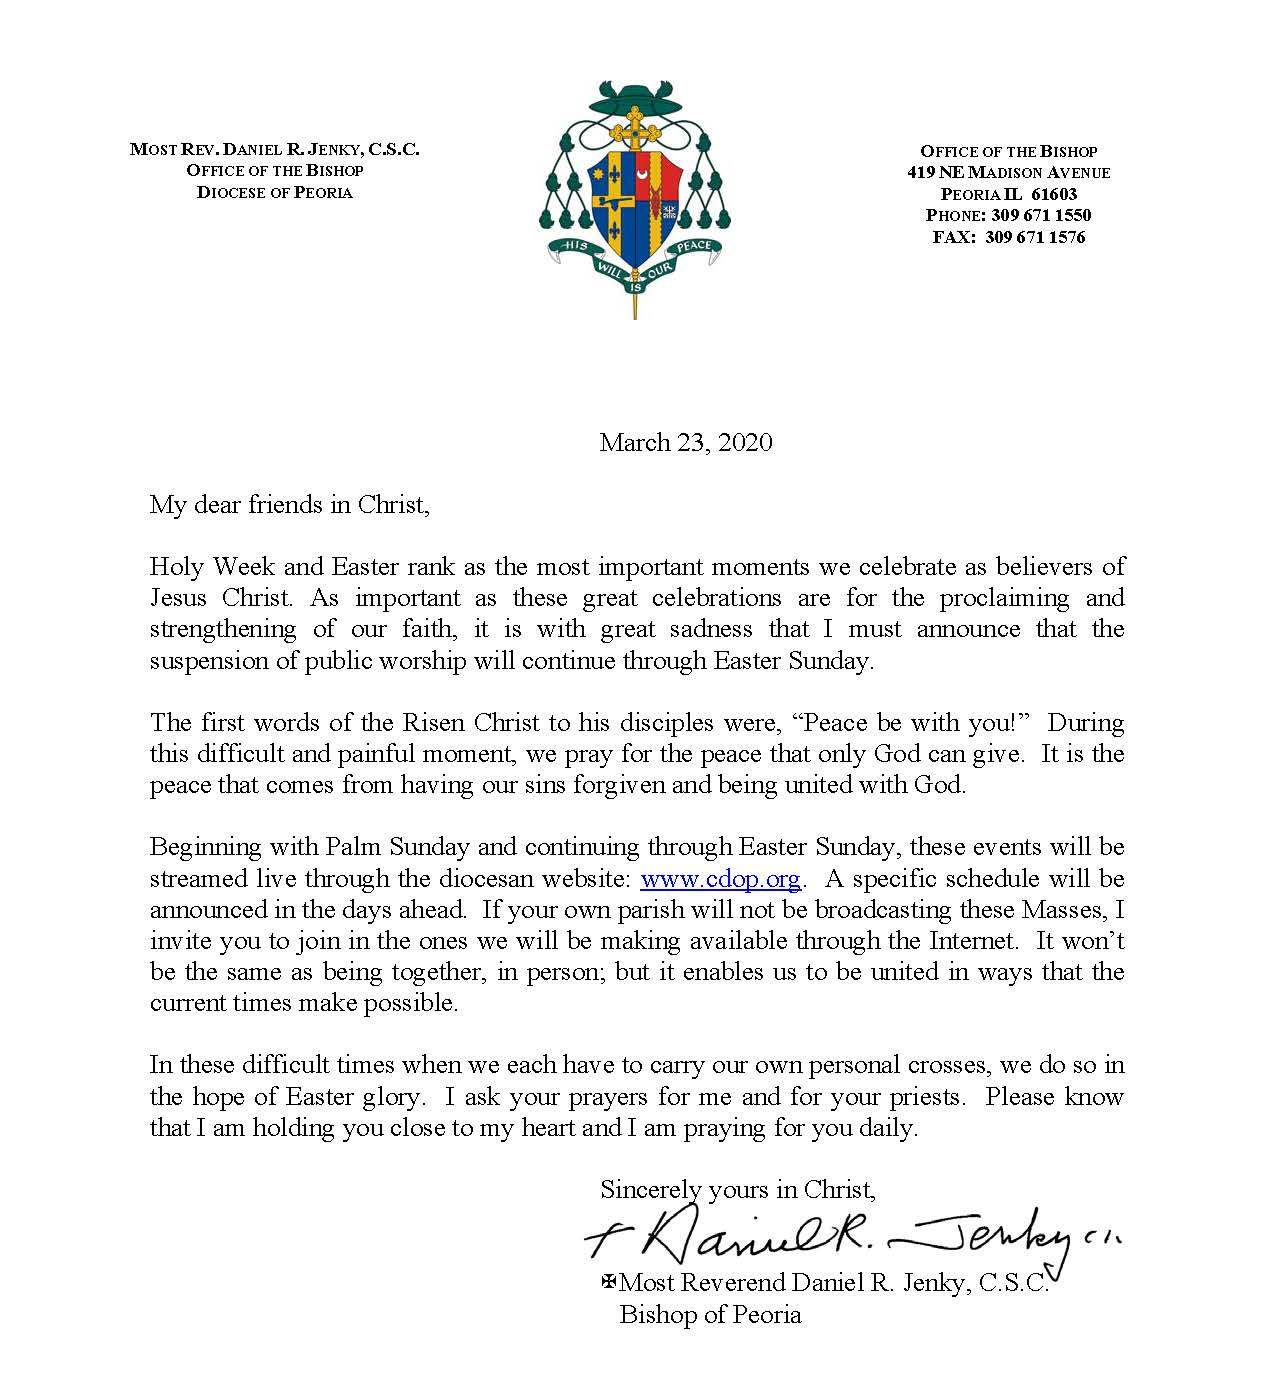 Message from DRJ-Holy Week-Easter_03-23-20